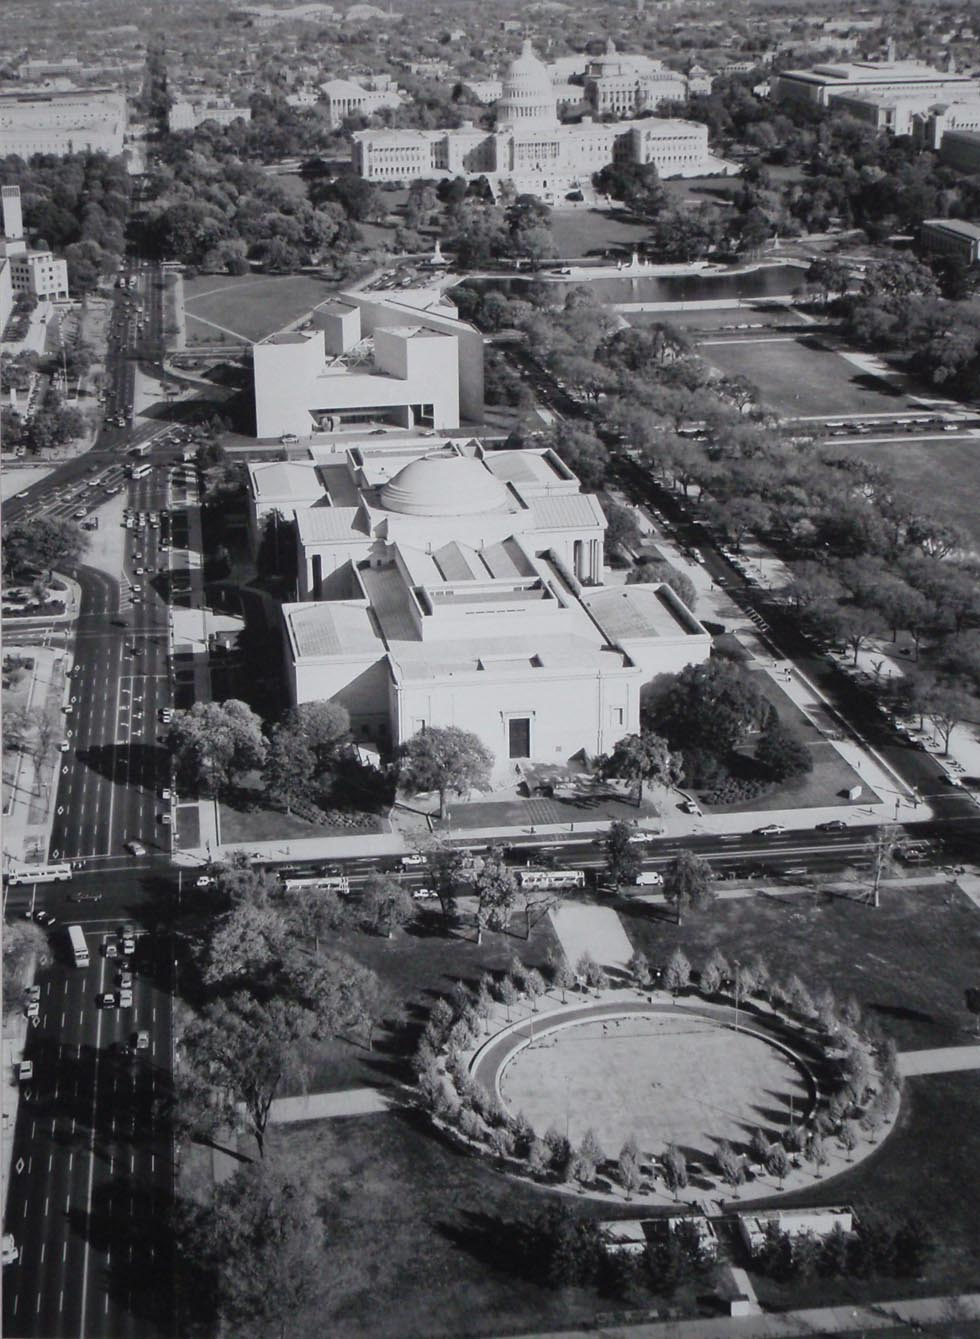 Enlarged - National Gallery of Art - Washington DC 1980 from the air